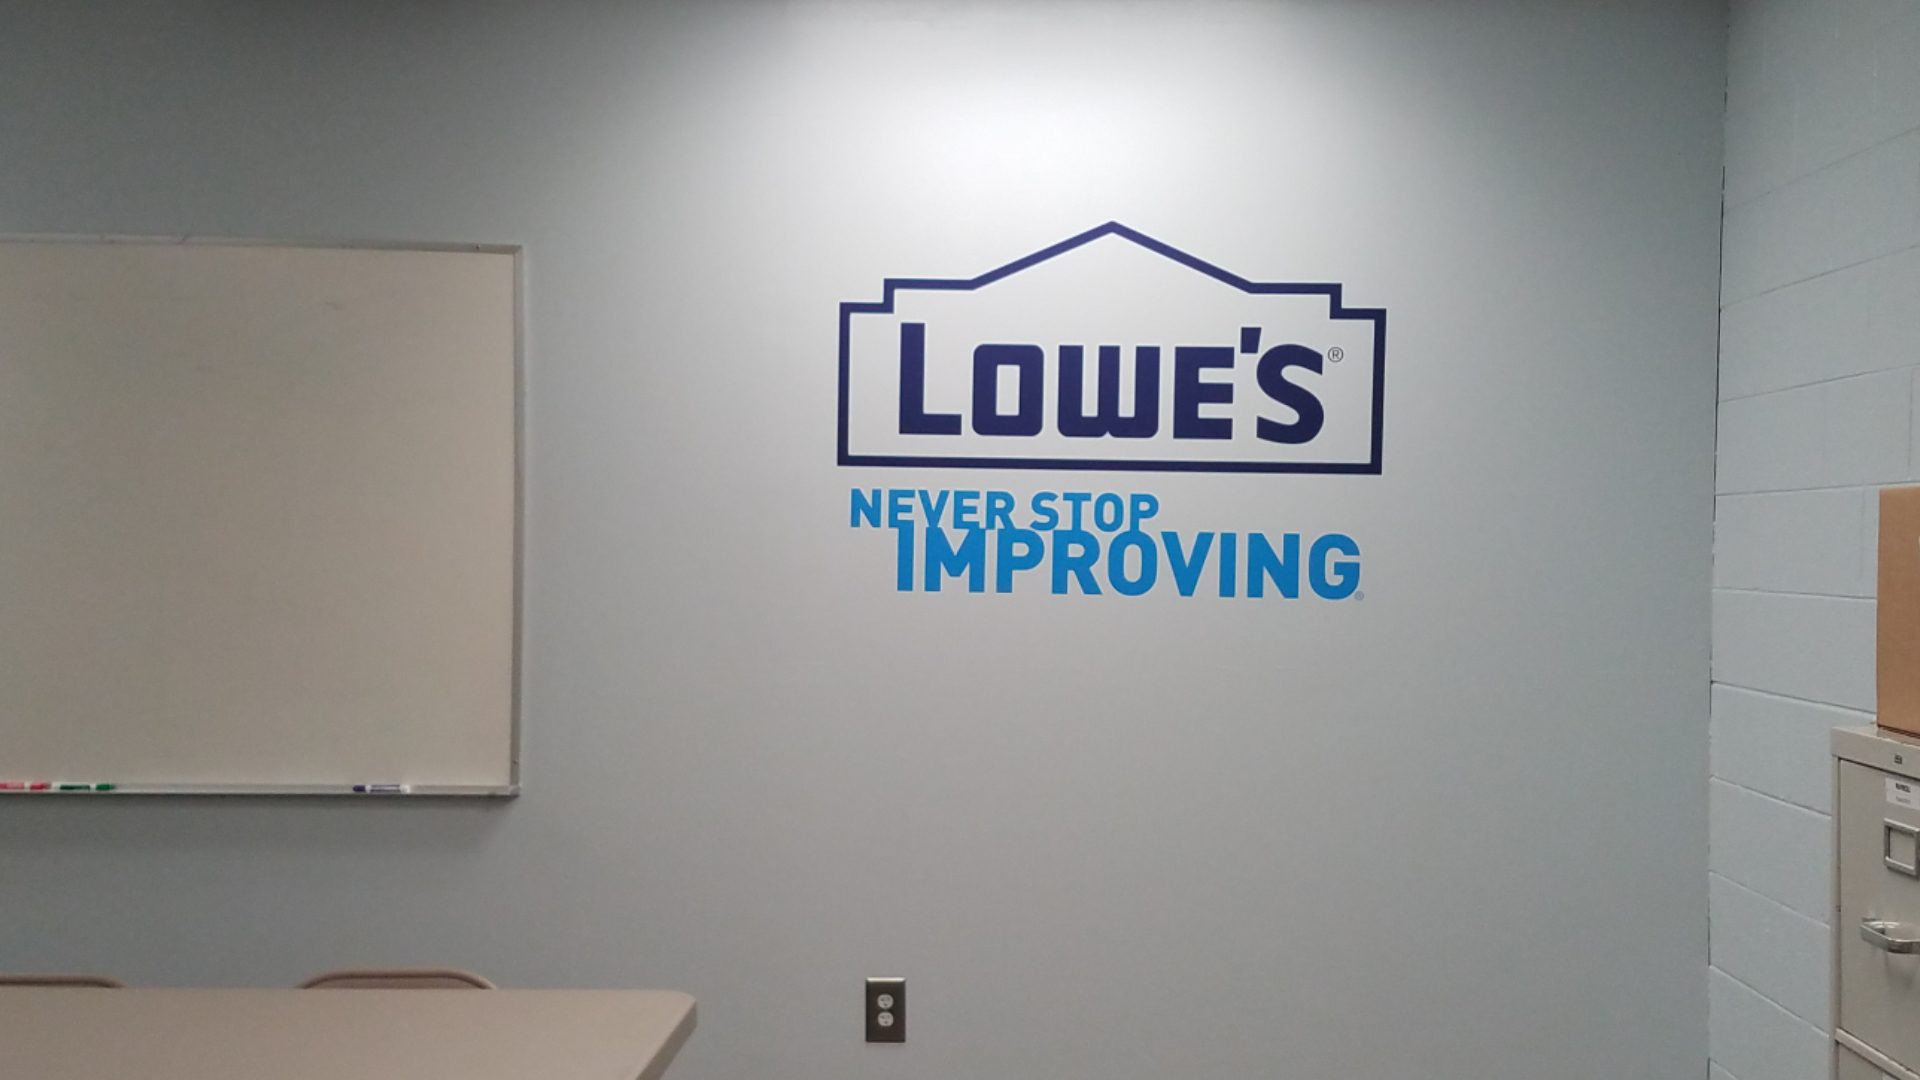 Lowes - Vinyl Wall Graphics (4)